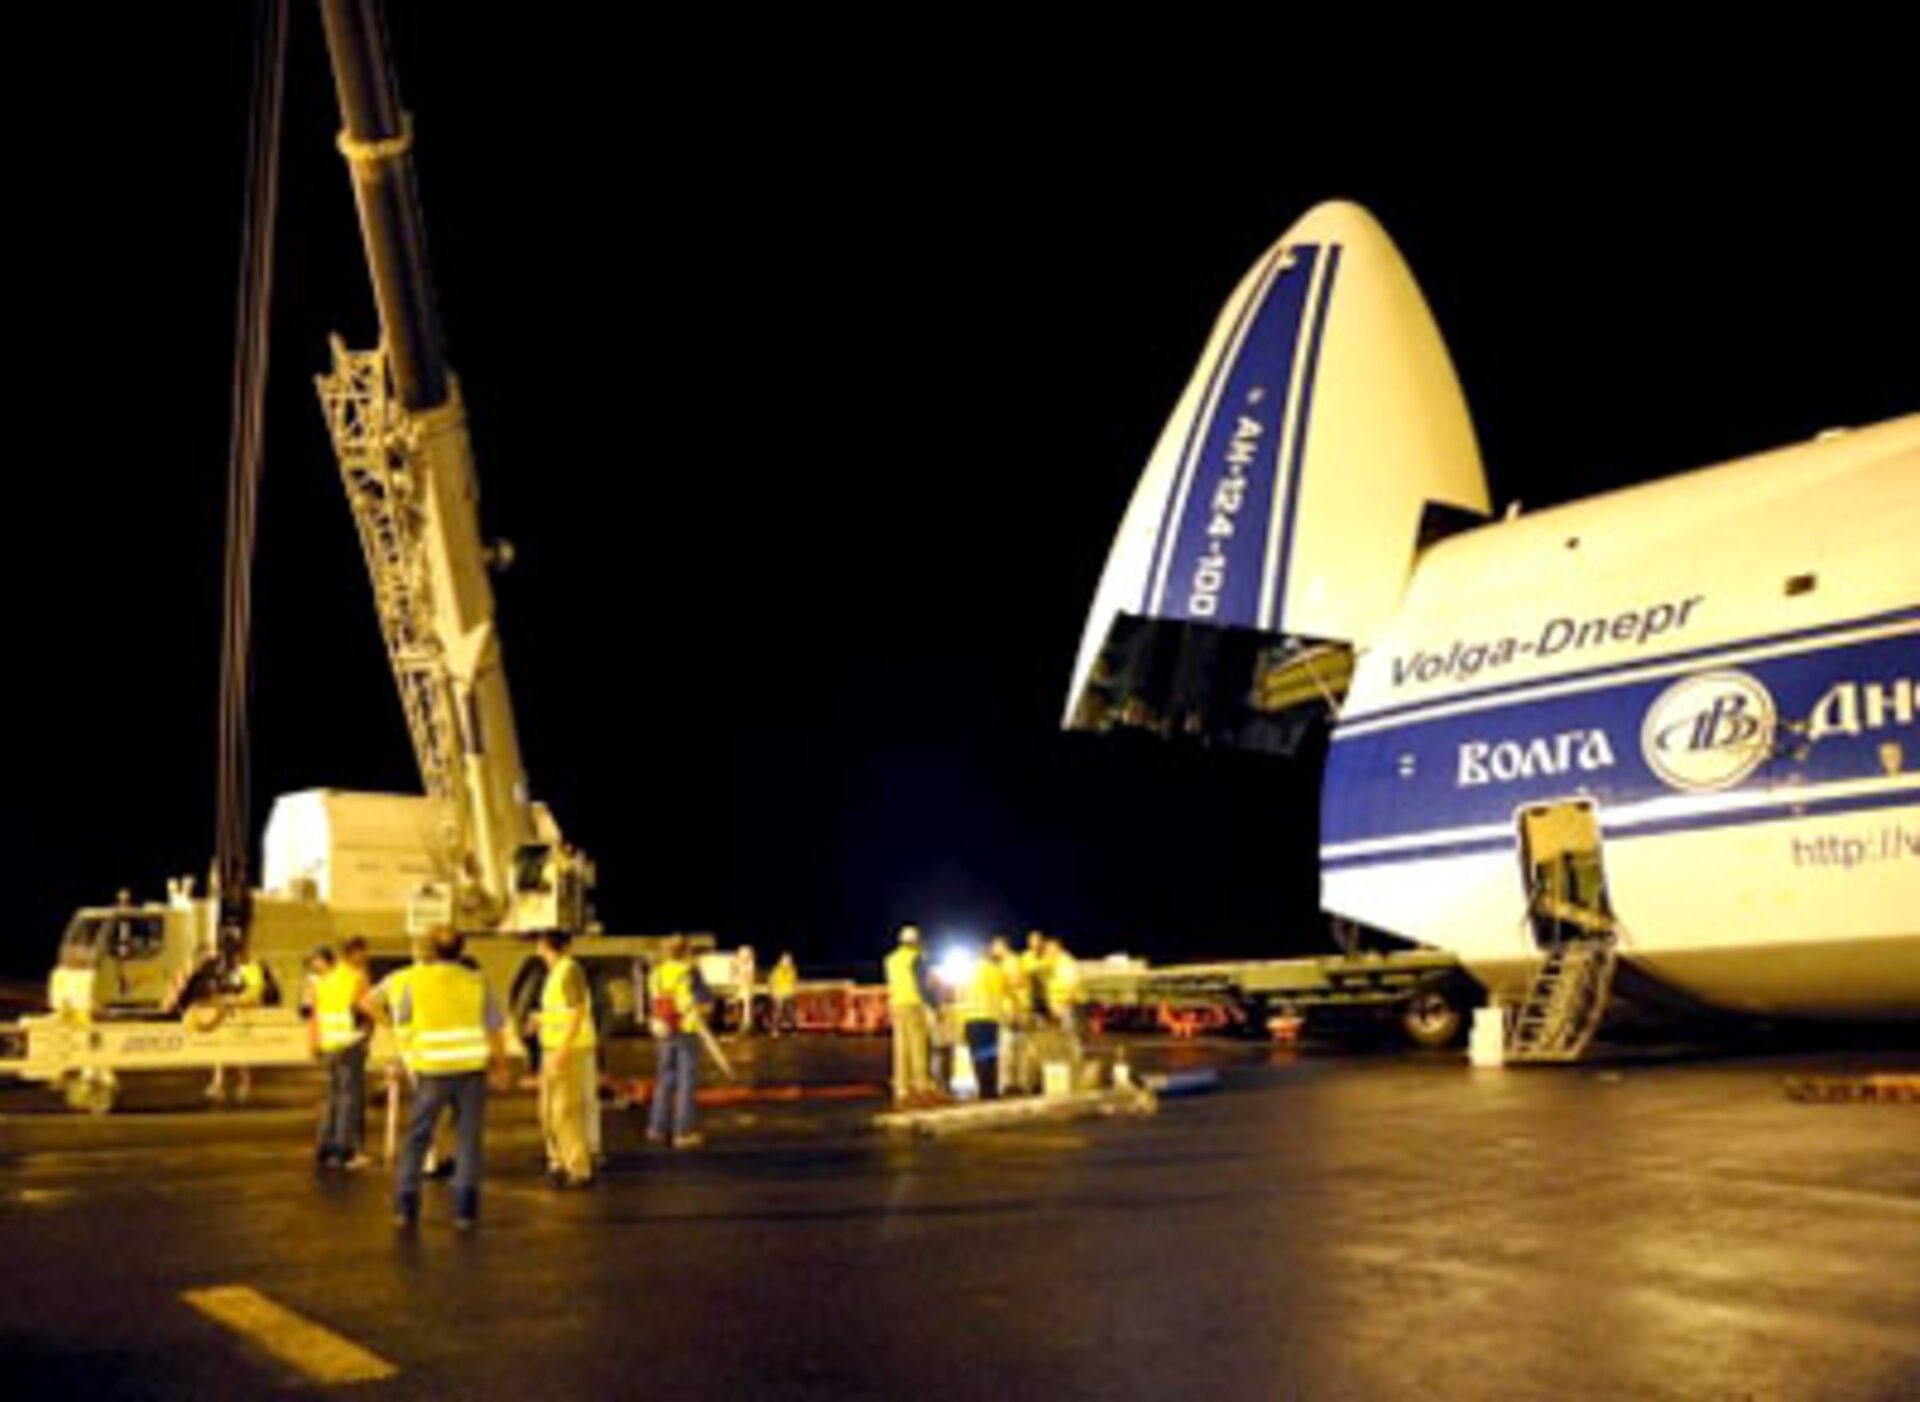 Planck prepared for transportation to launch site